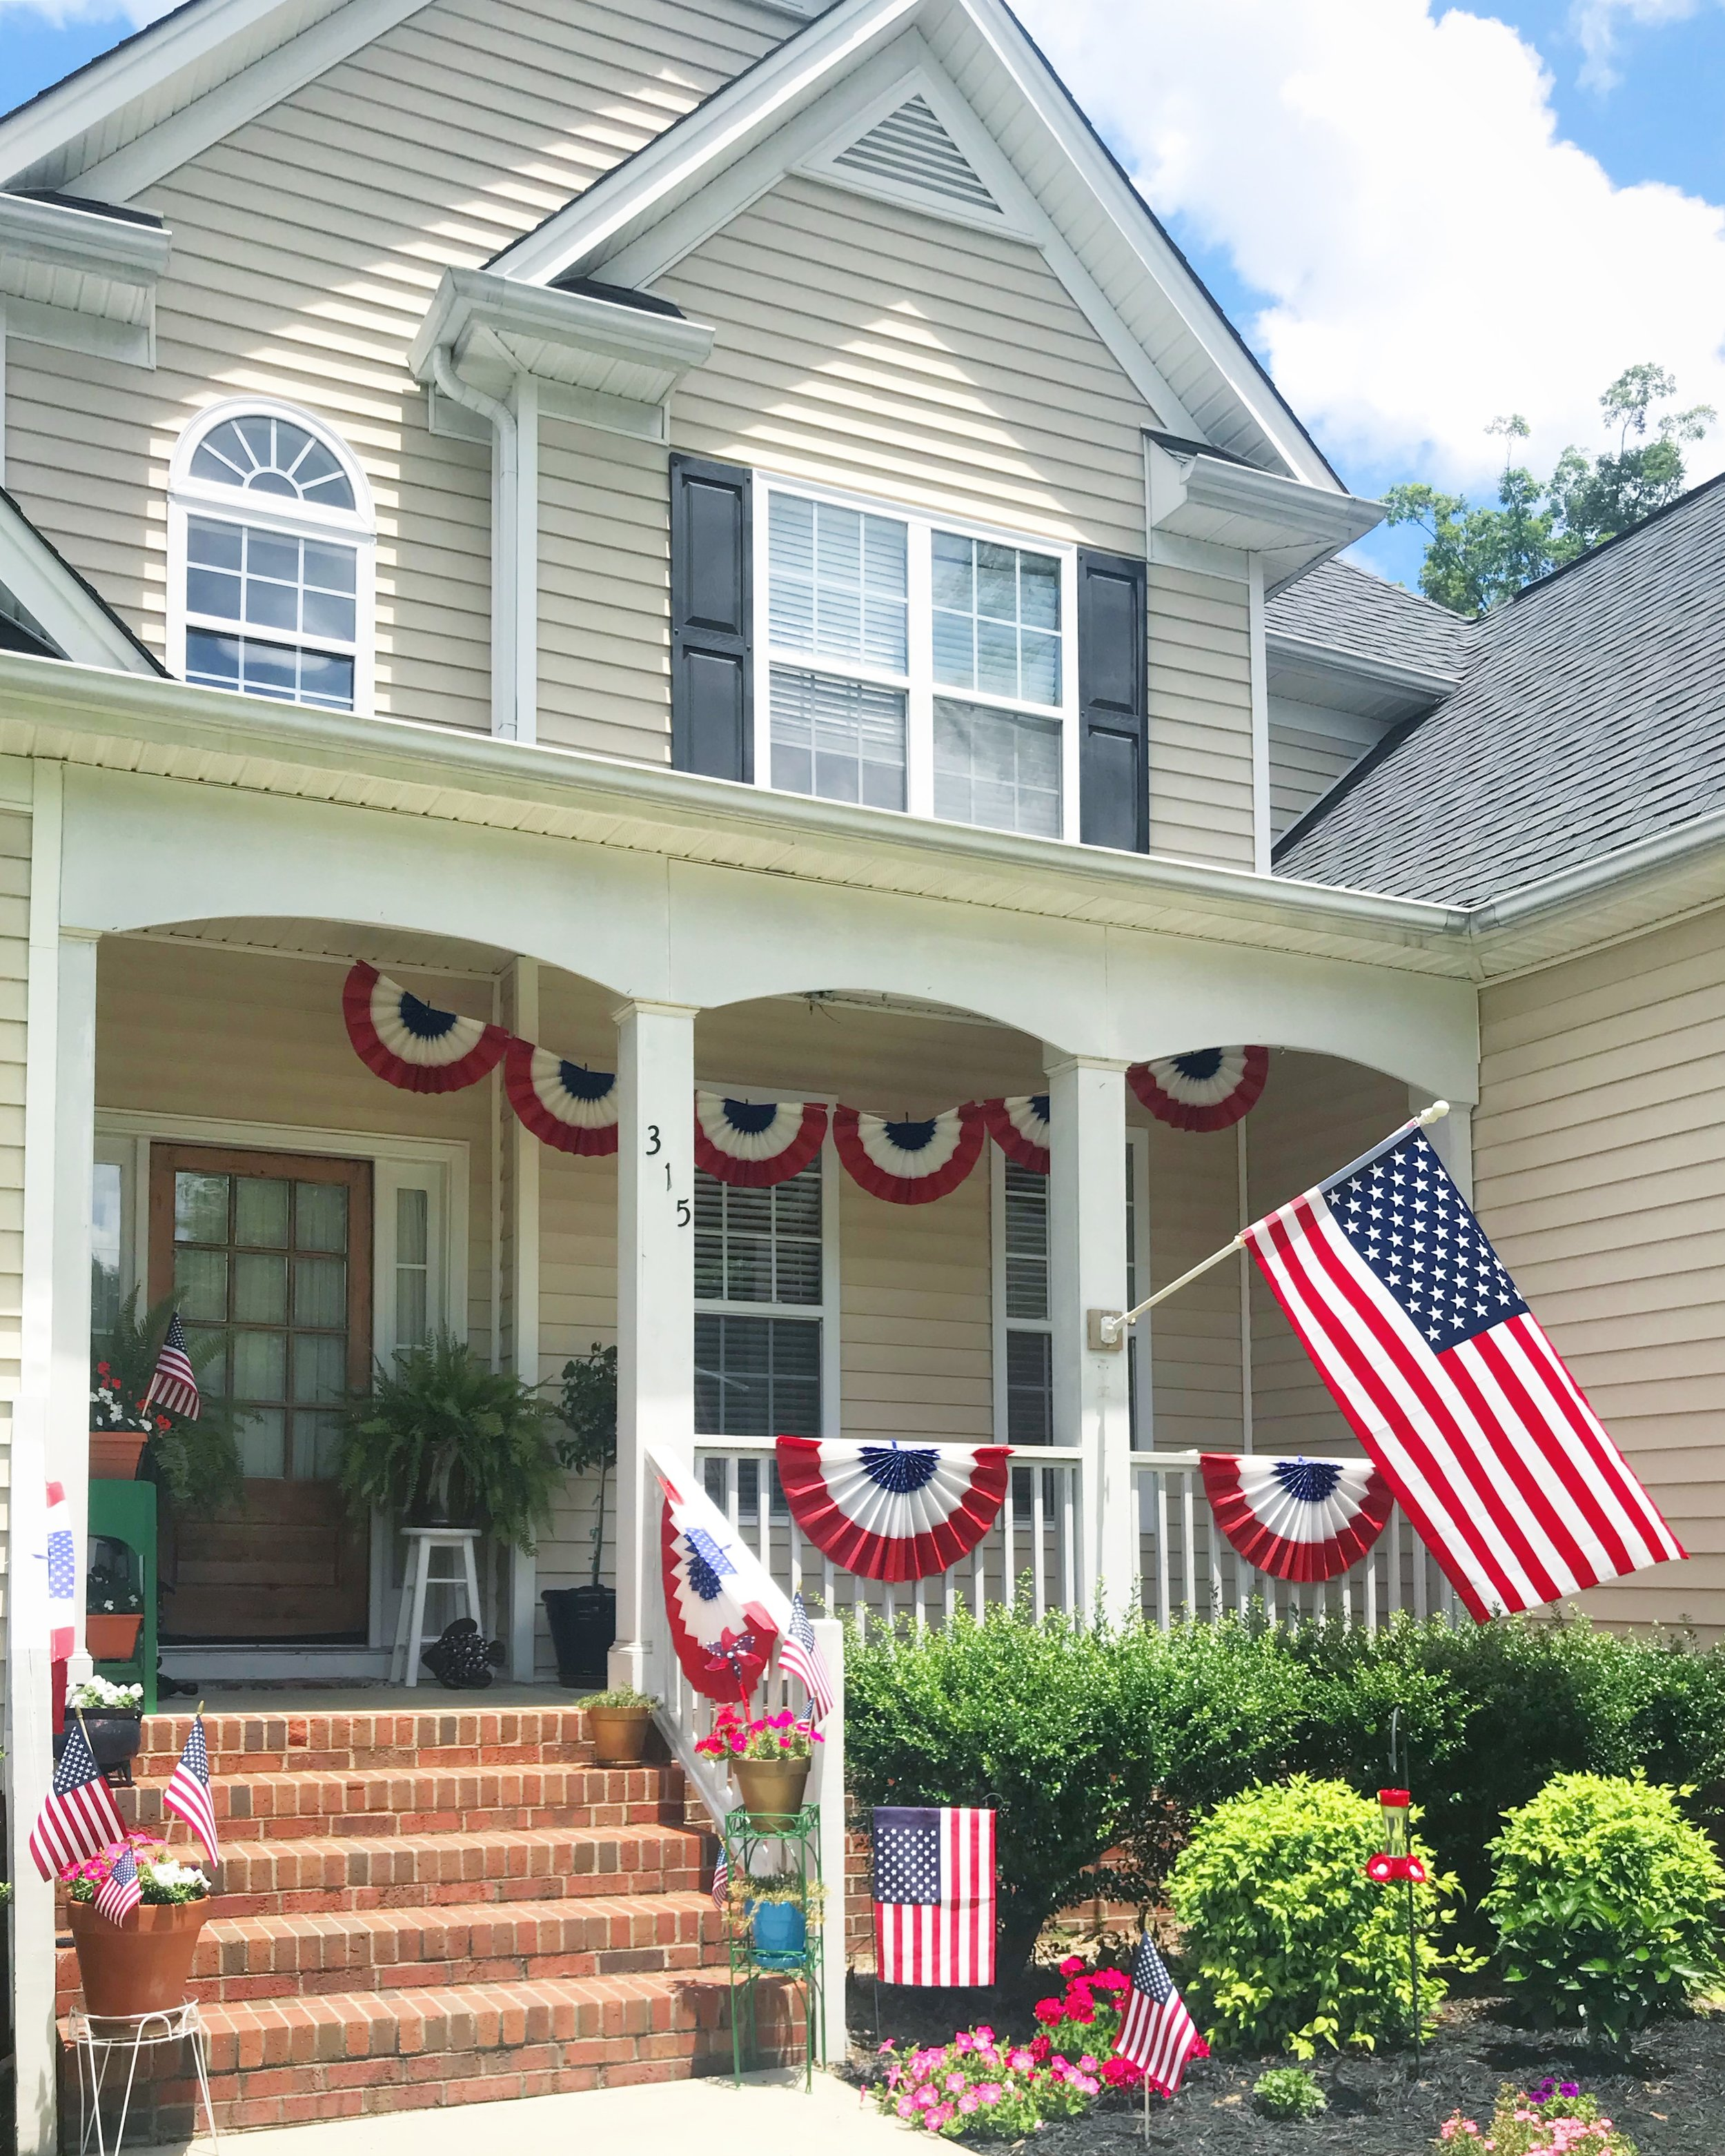 4th of July Bunting and American Flag Porch Decorations